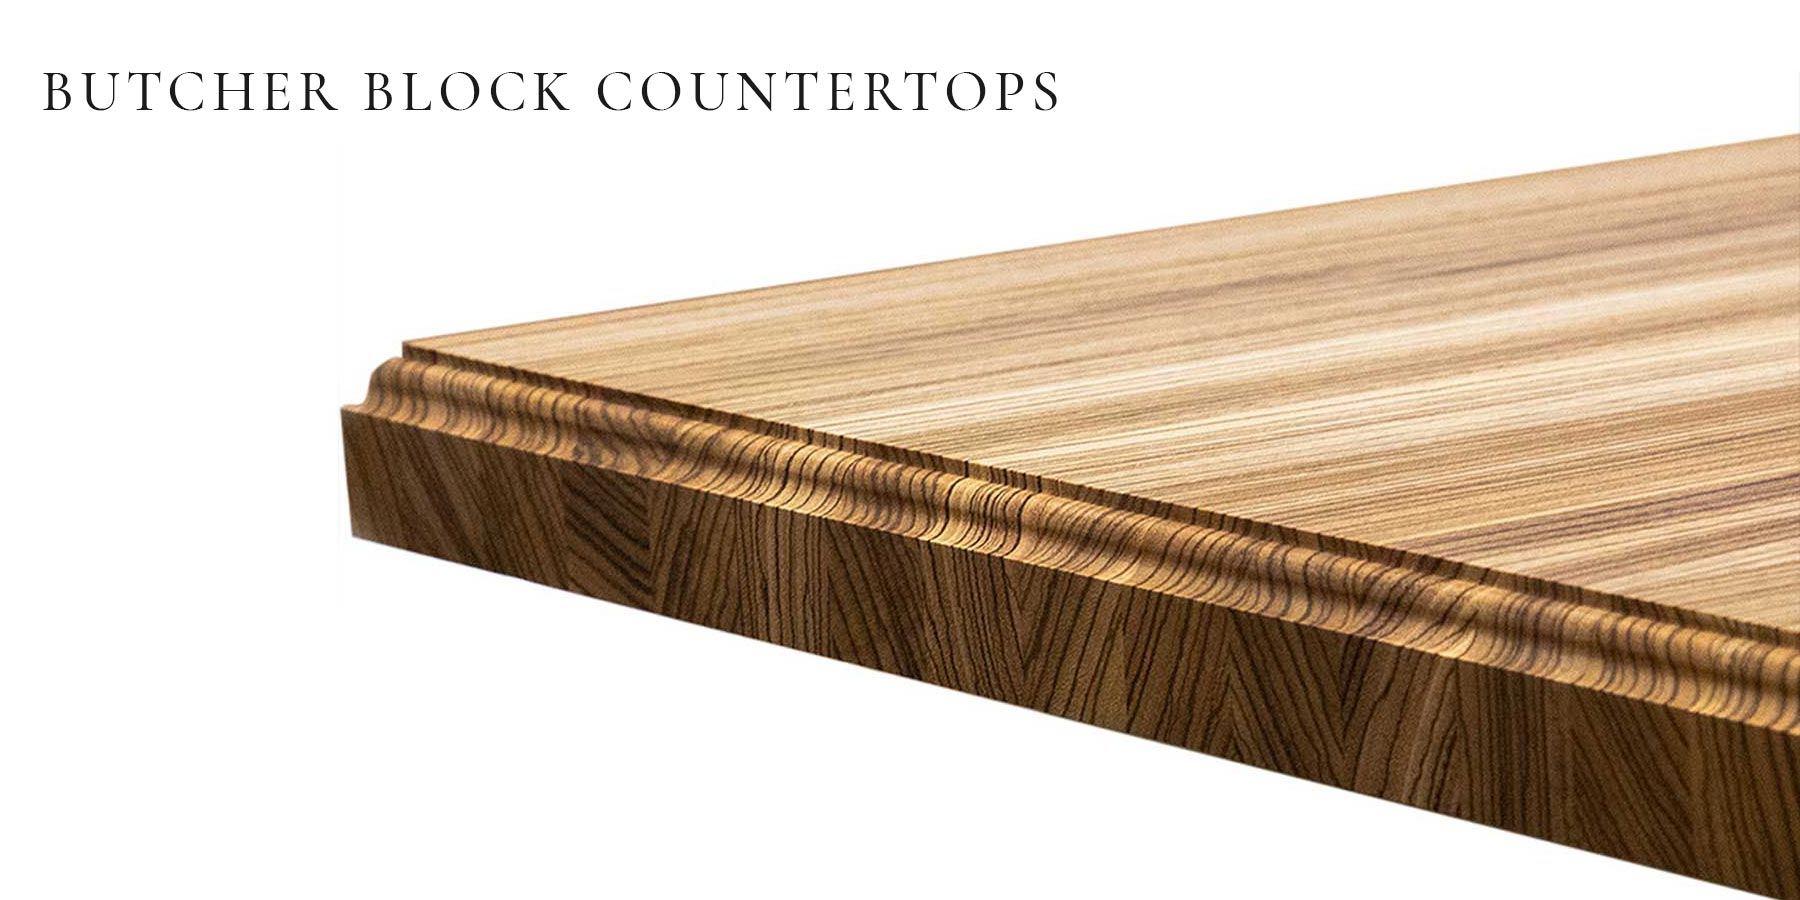 Butcher Block Countertops by RealCraft